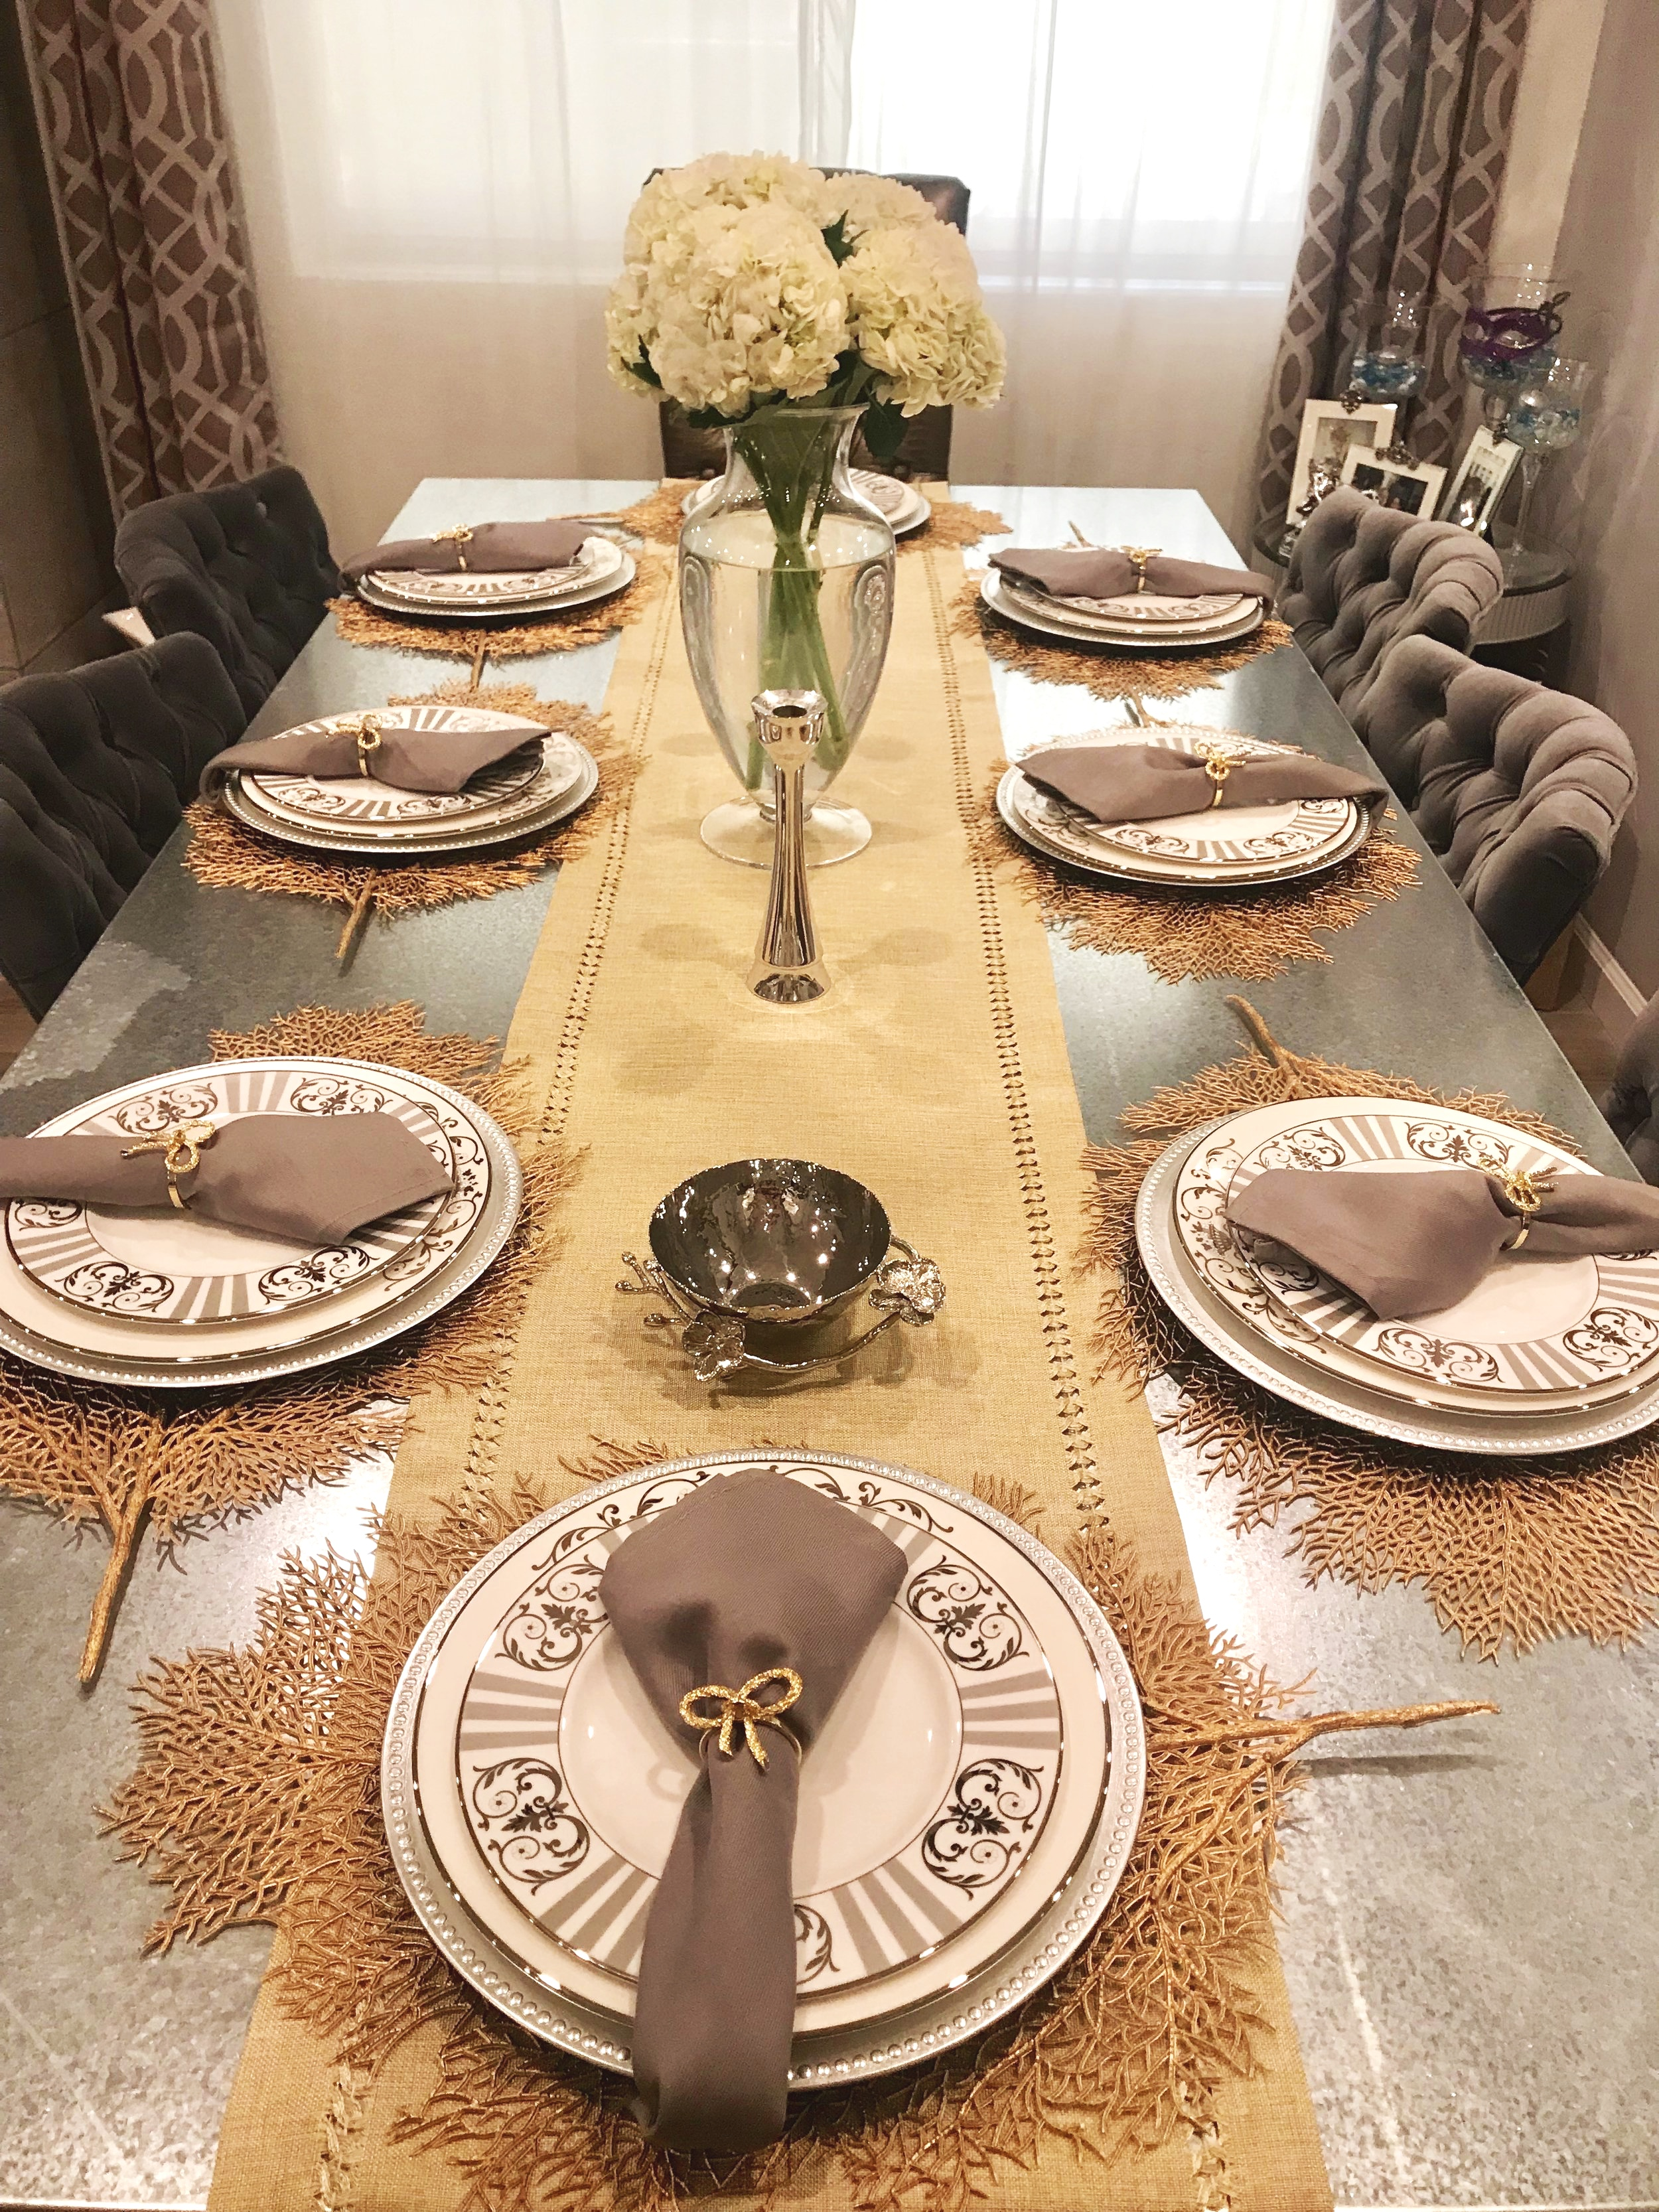 Take a look here, we've incorporated grey napkins with gold ribbon rings, silver and white plates on a silver charger followed by gold leaf placemats.